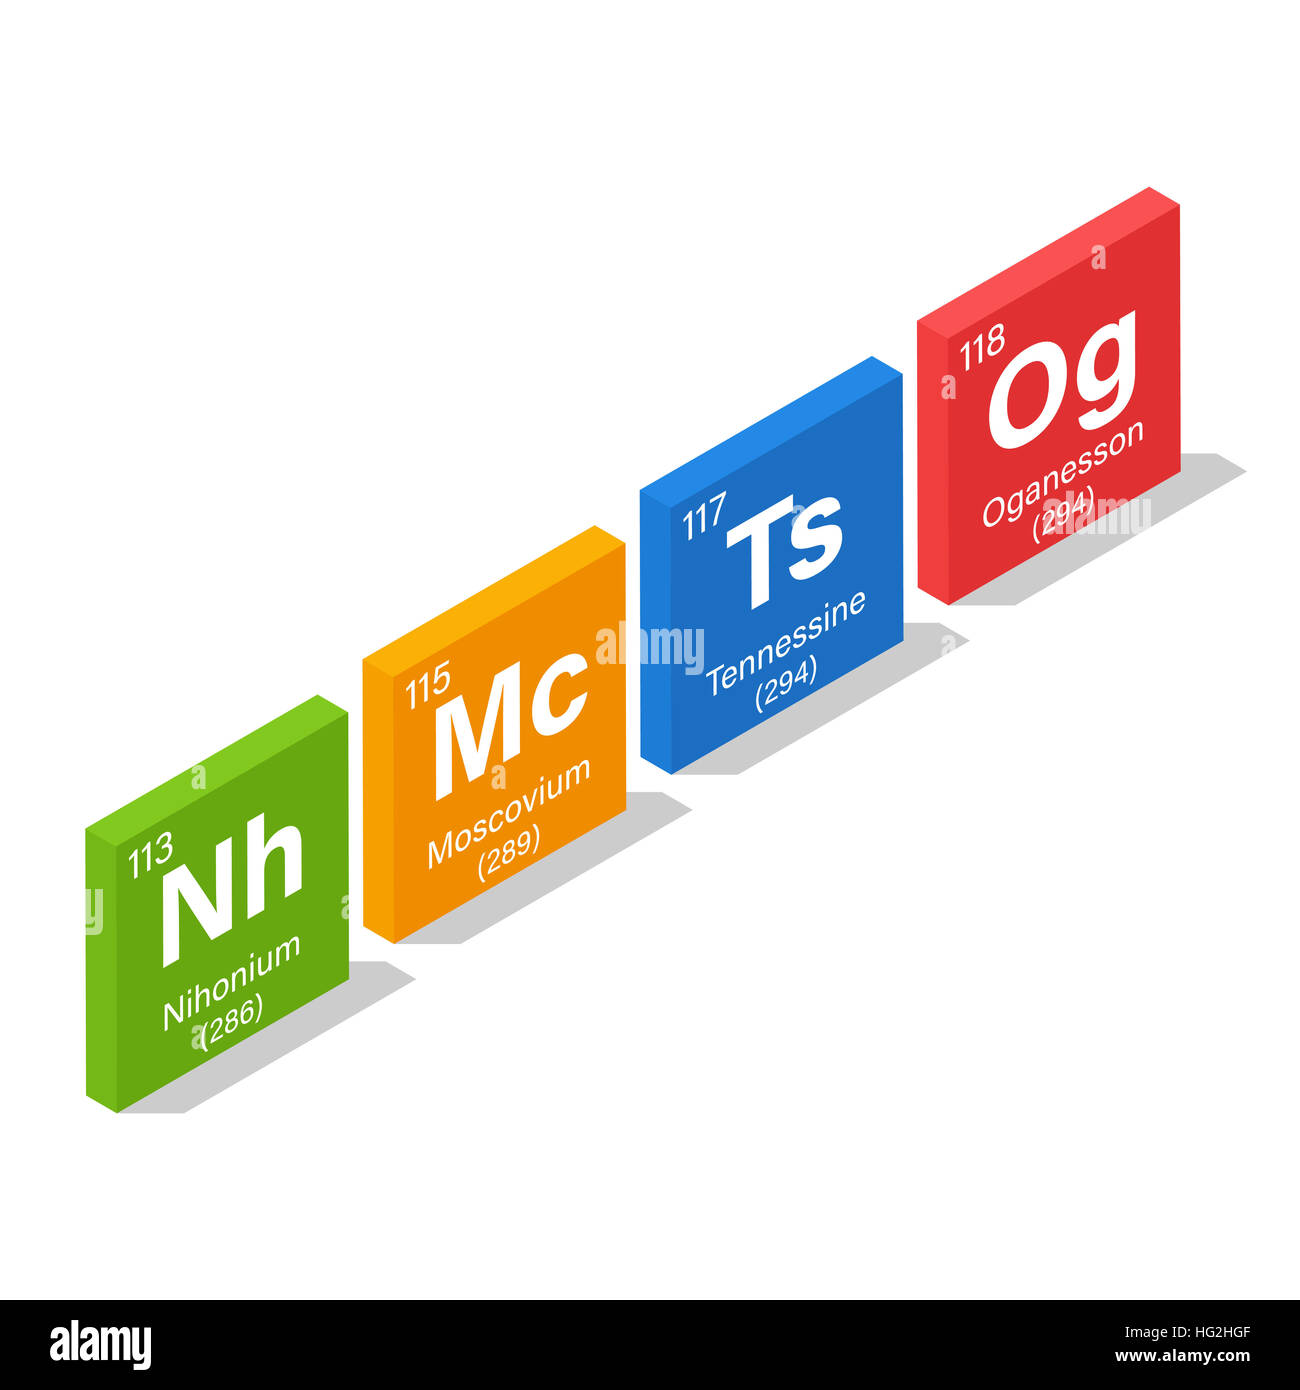 2016 new elements in the periodic table nihonium moscovium 2016 new elements in the periodic table nihonium moscovium tennessine and oganesson 3d isometric style gamestrikefo Image collections